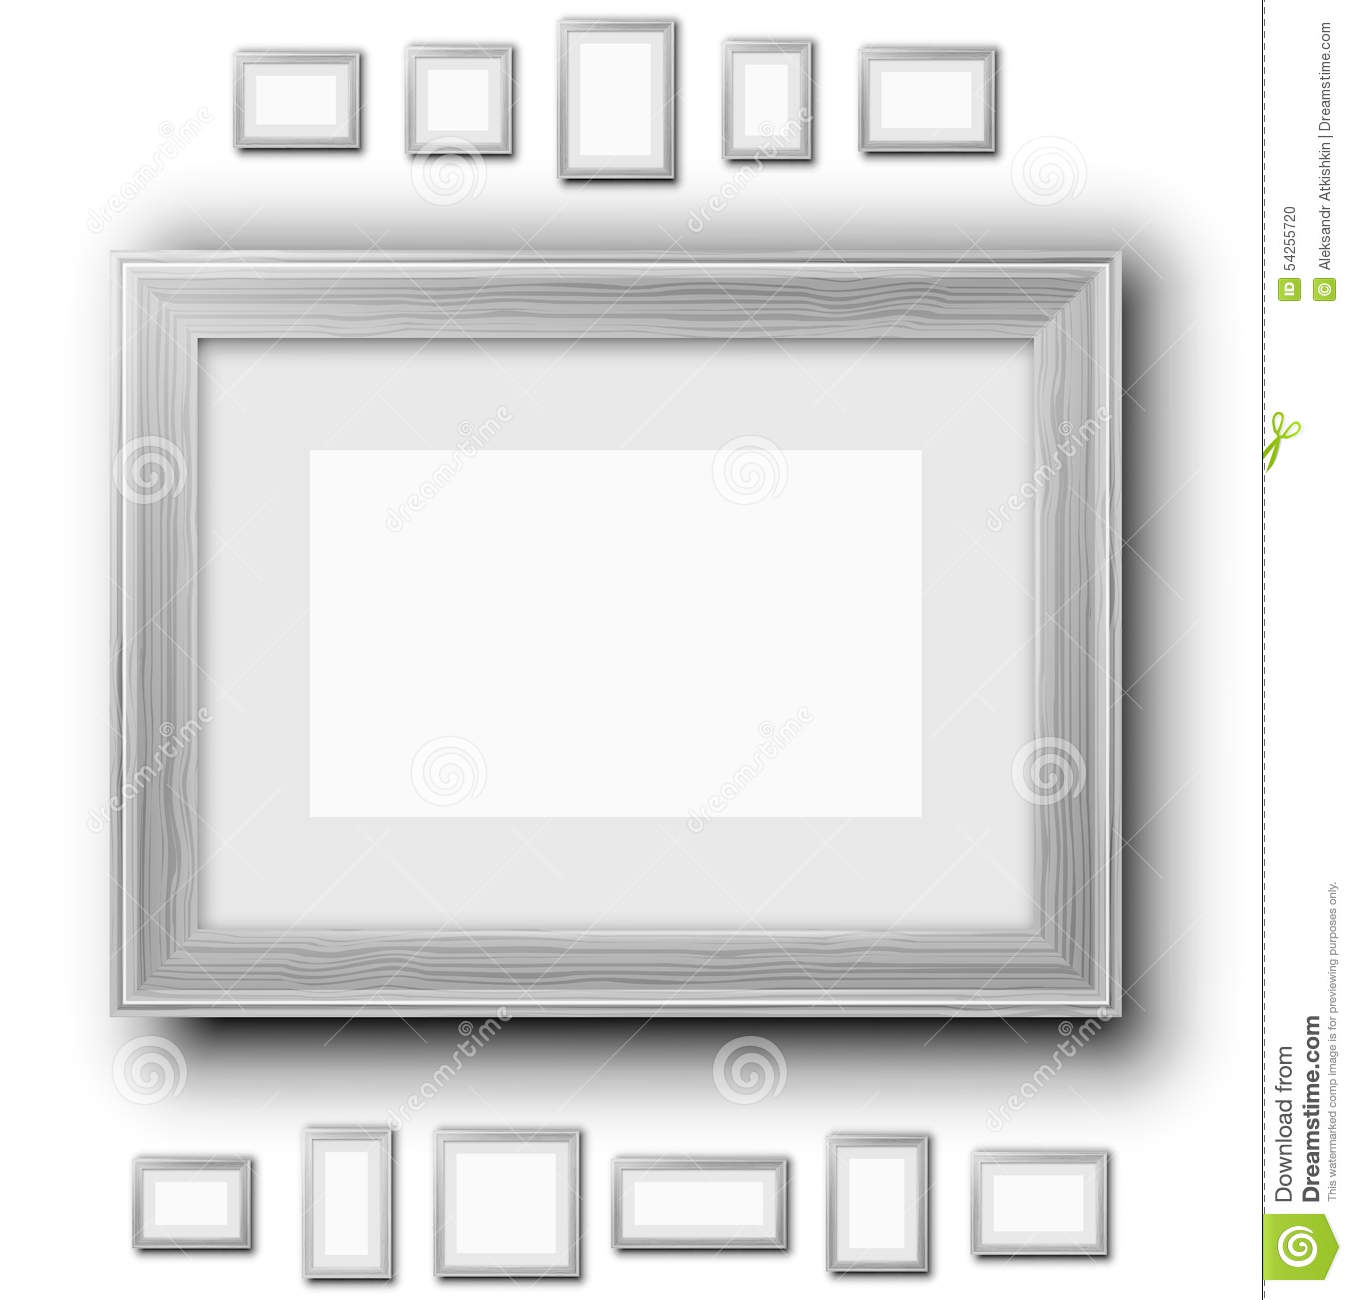 Frames set stock vector. Illustration of photo, banner - 54255720